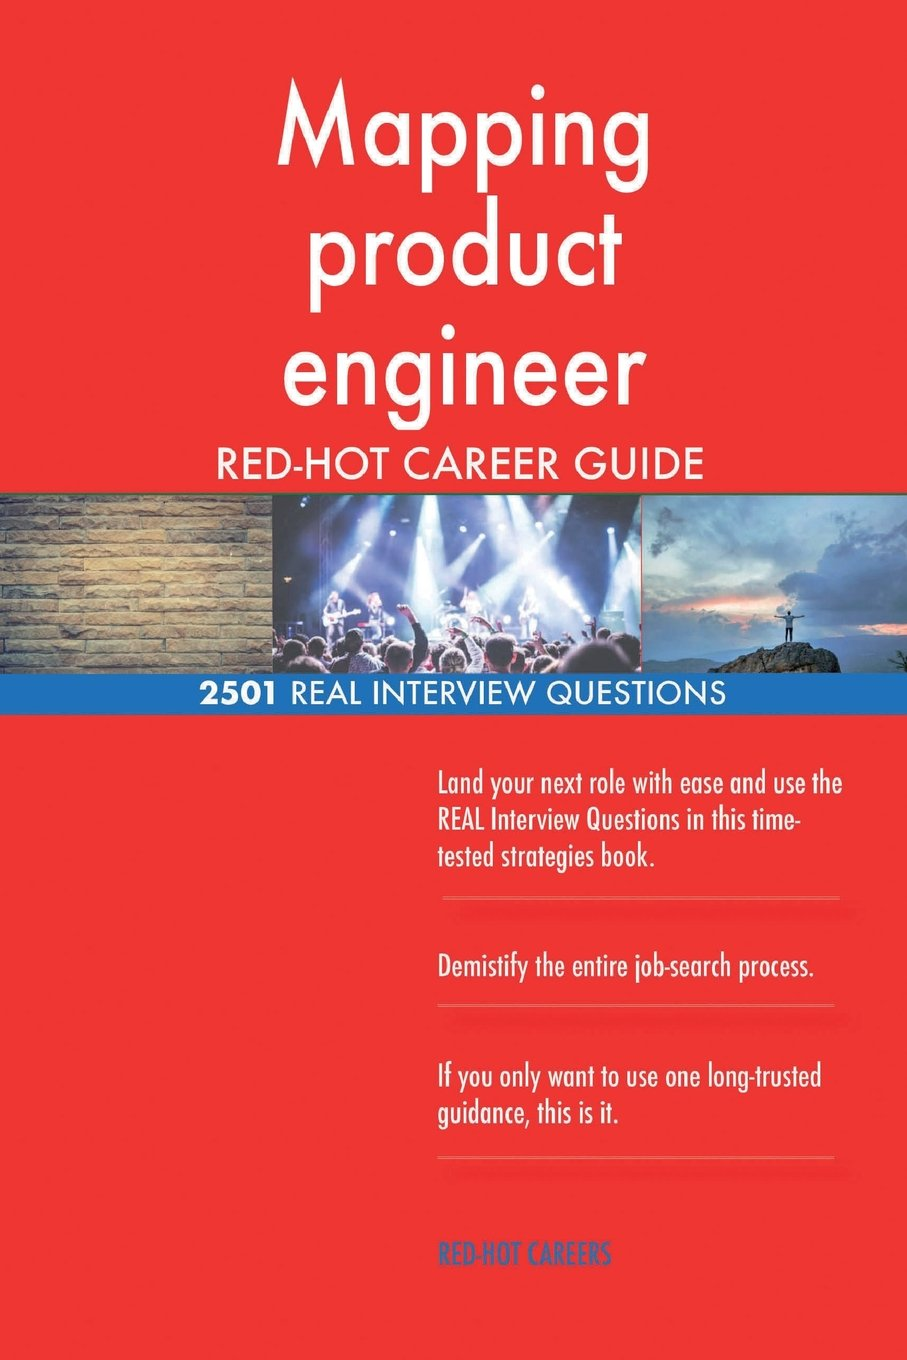 Mapping product engineer RED-HOT Career Guide; 2501 REAL Interview Questions ebook